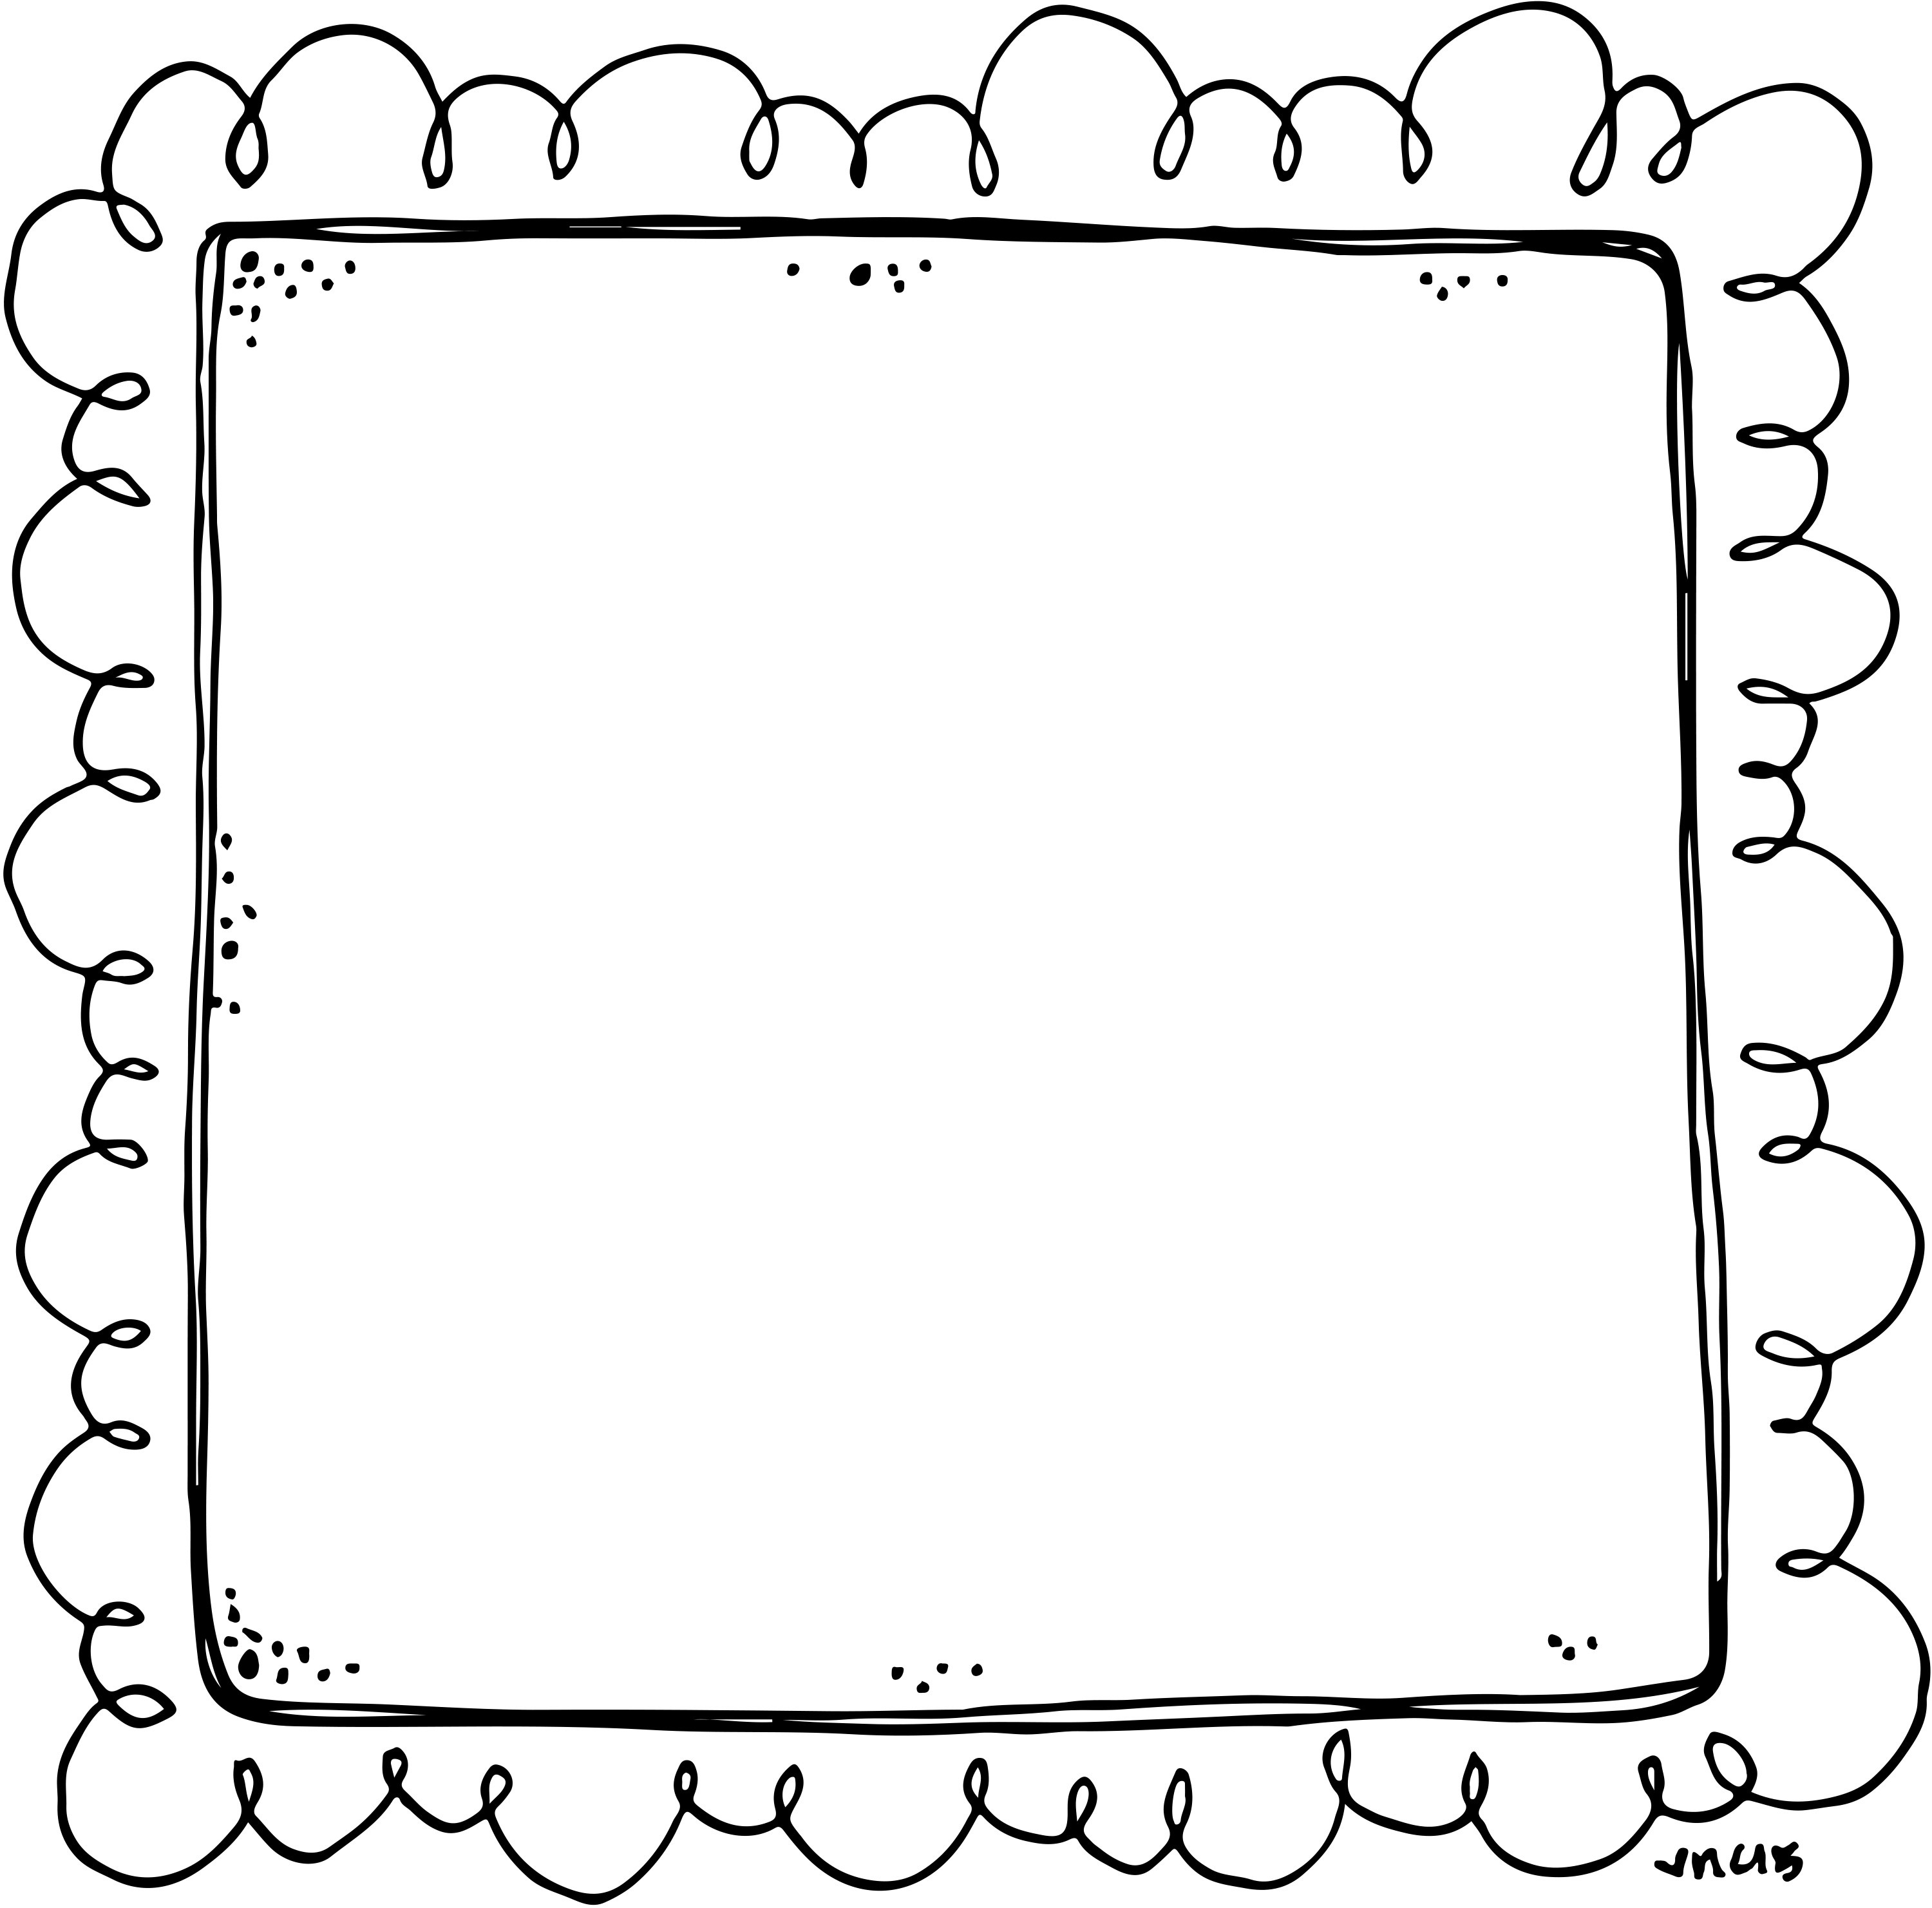 border or frame for newsletters announcements black